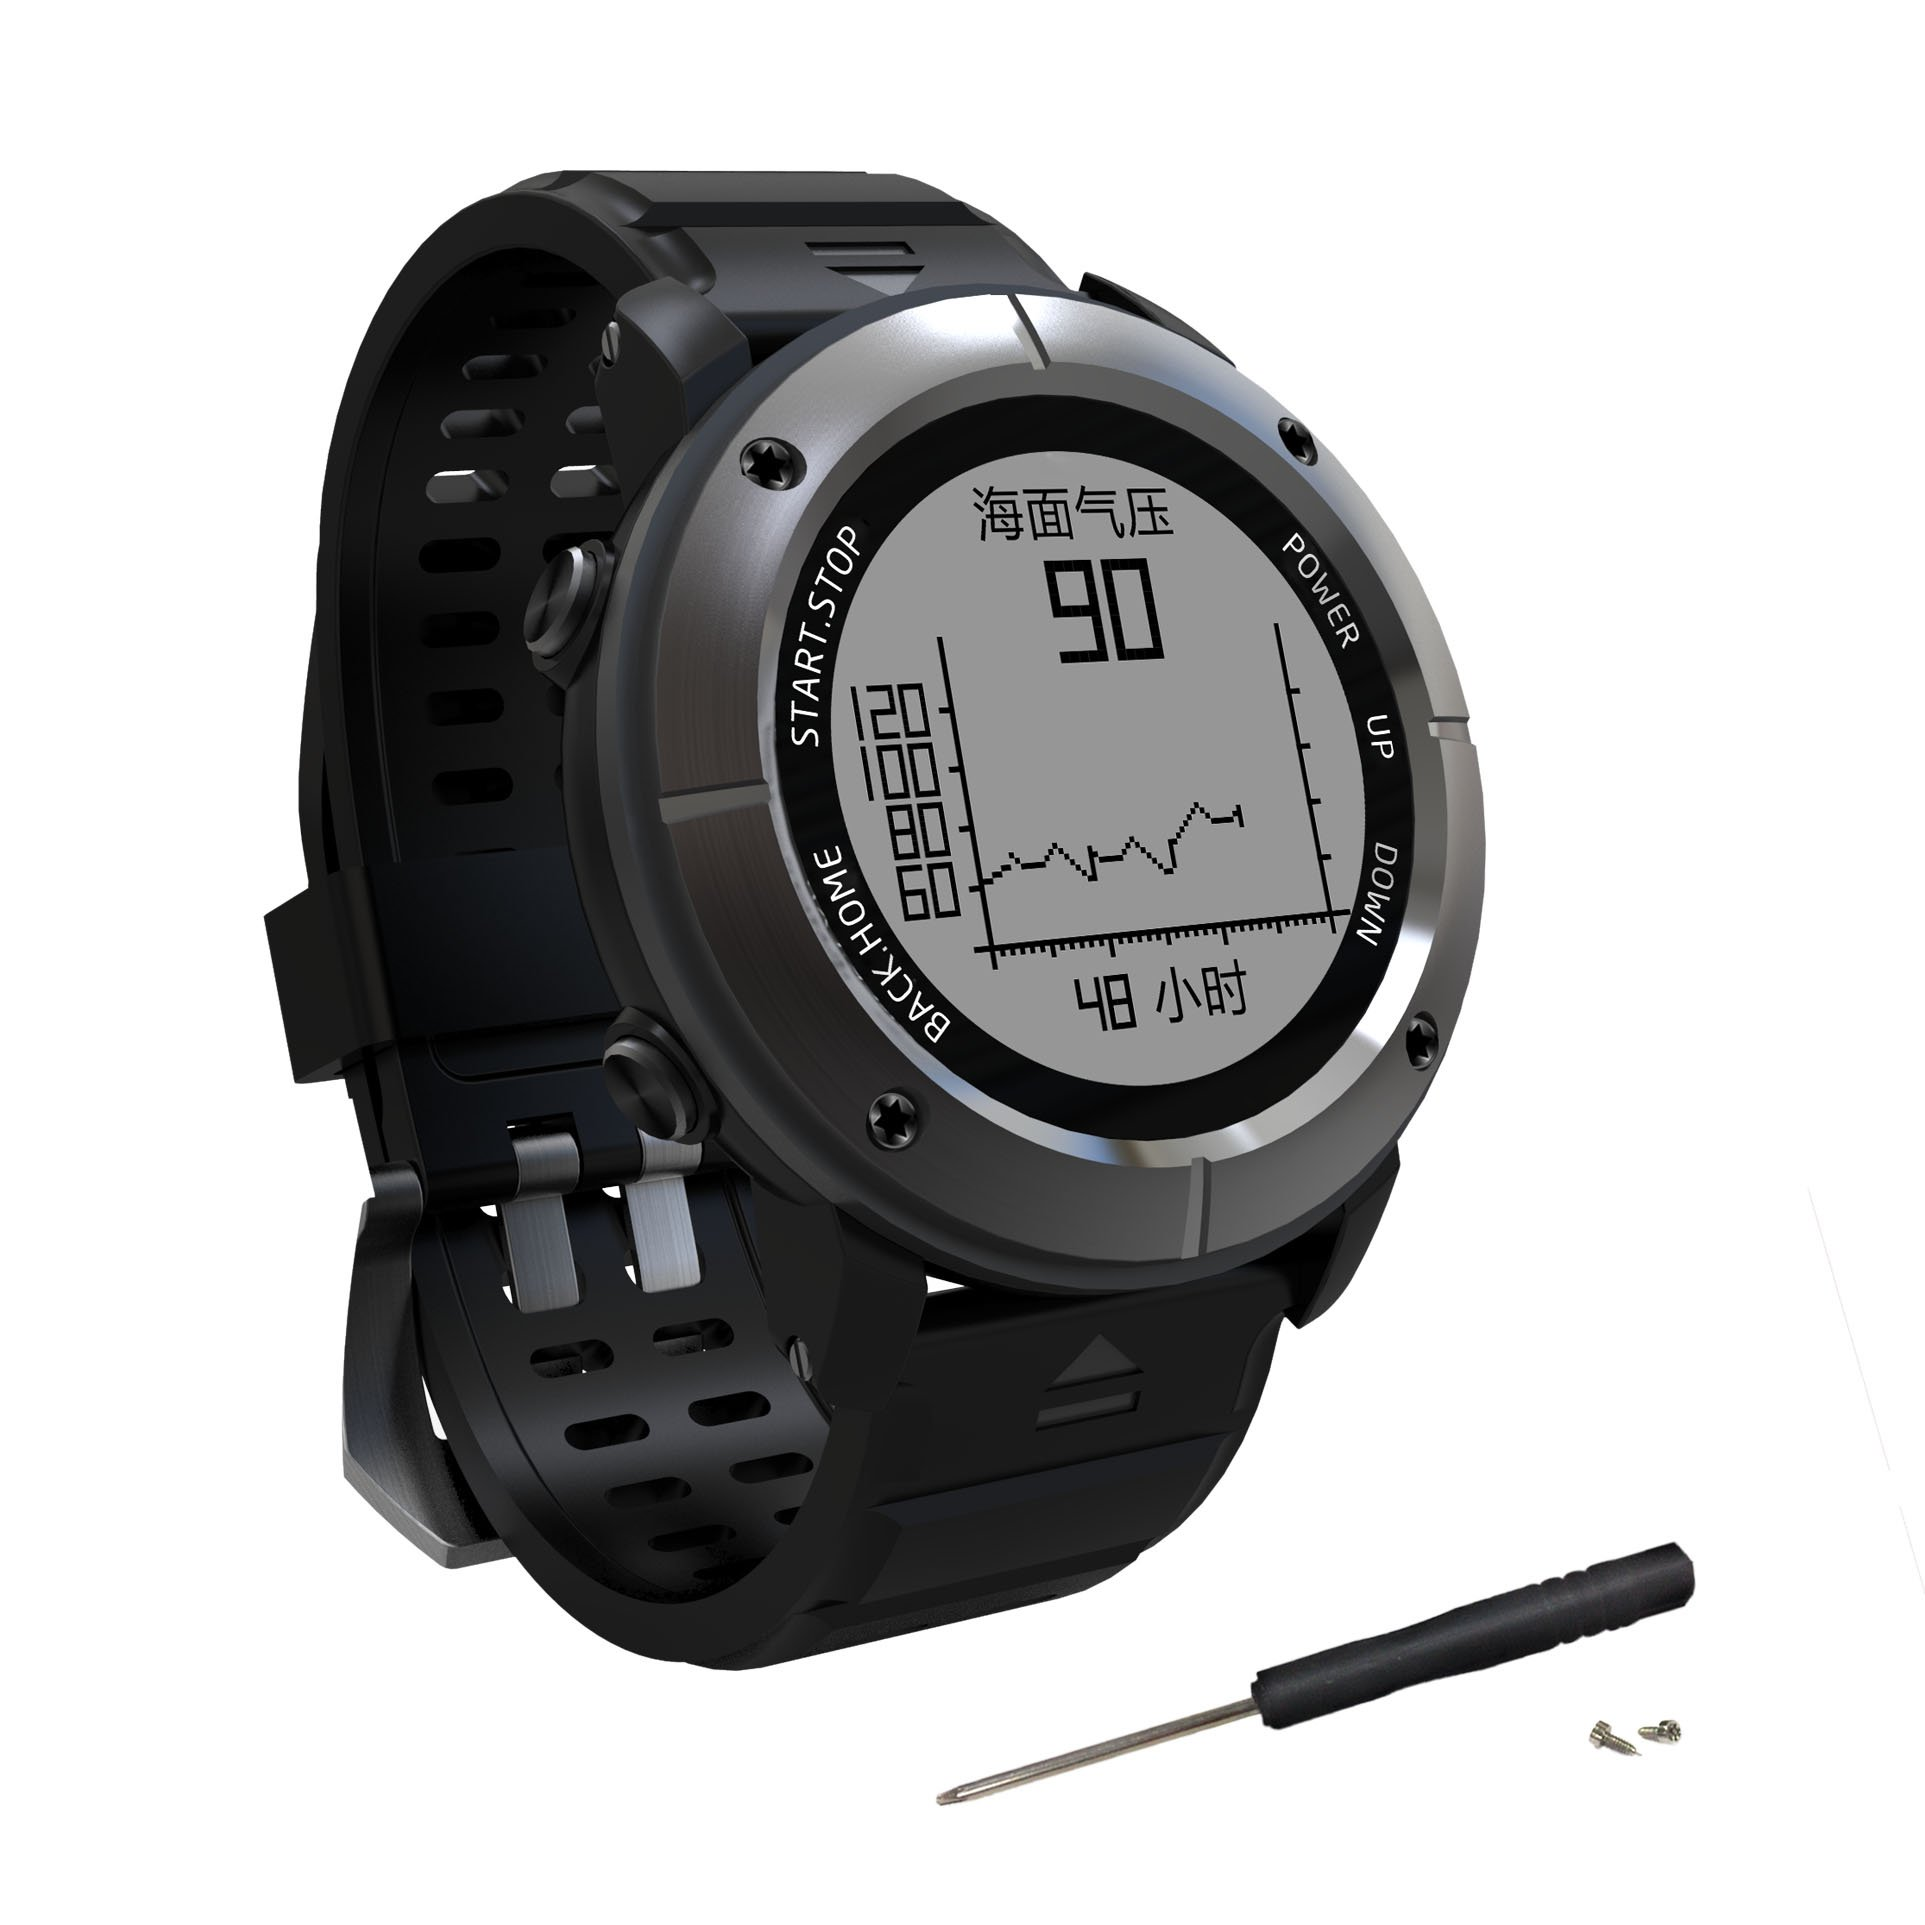 GPS Hiking Smart Watch,Reabeam,Adventurer Outdoor Sports Waterproof Watch,Multi-function Mode,for Tracking Running,Hiking?Heart Rate Monitor,SOS,Compass,Watch Connect with Smart Cellphone APP